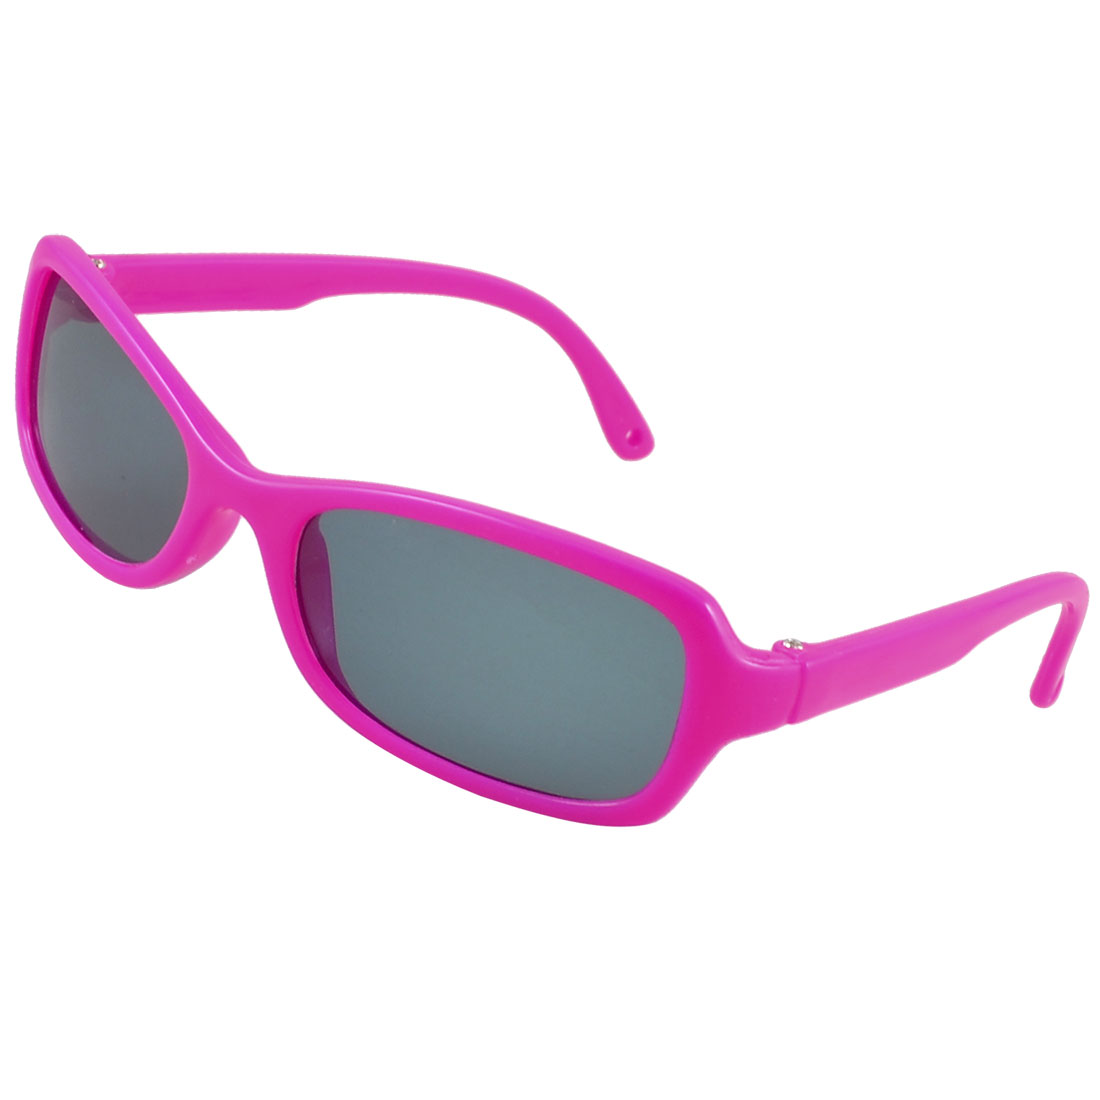 Single Bridge Magenta Plastic Rimmed Colored Lens Leisure Sunglasses for Kids